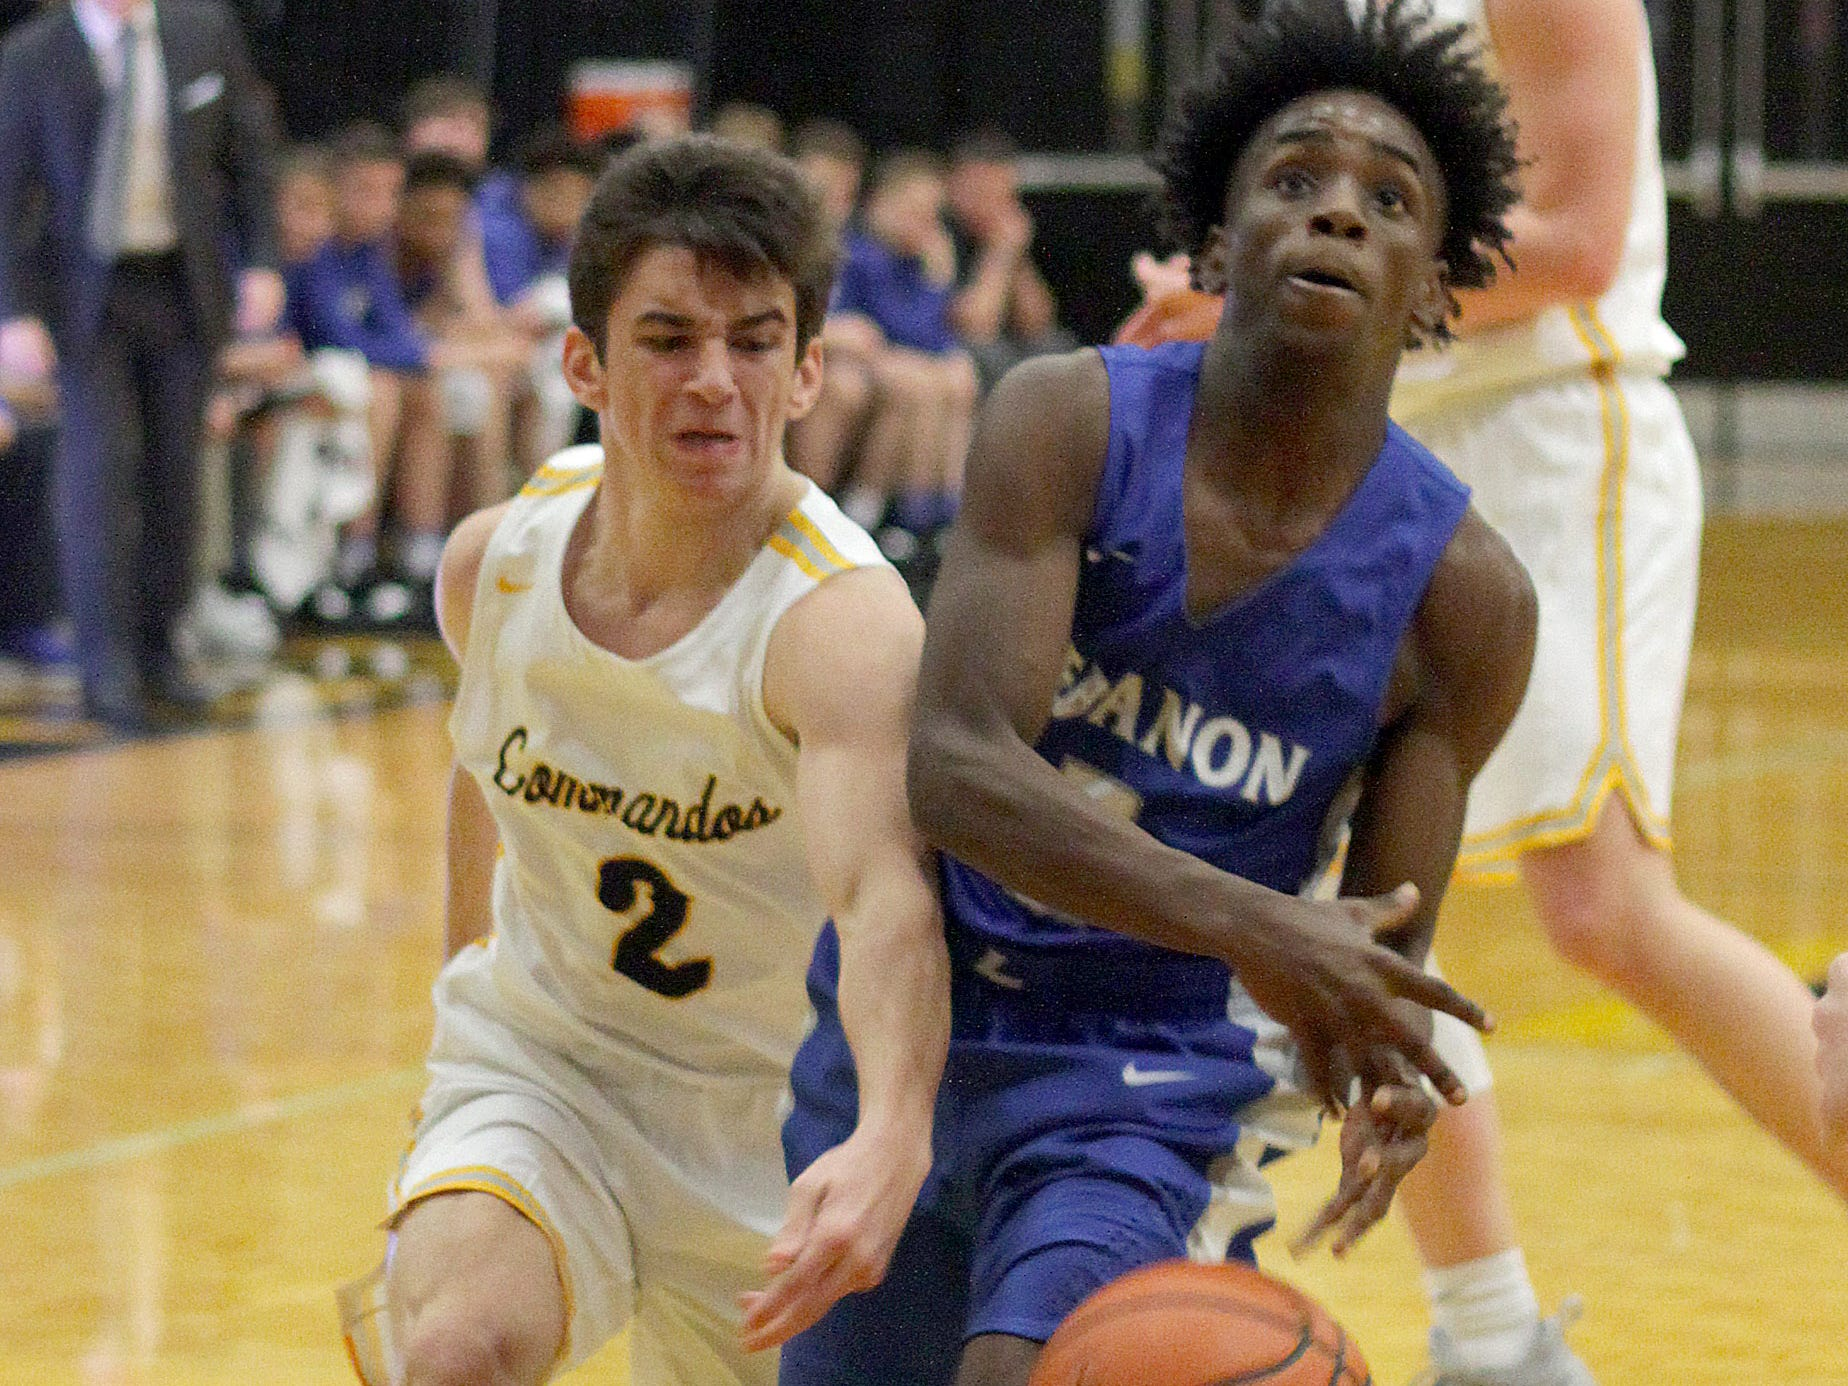 L-R Hendersonville's Grant Long swats the ball away from Lebanon's Malcolm Logue on Tuesday, December 11, 2018.